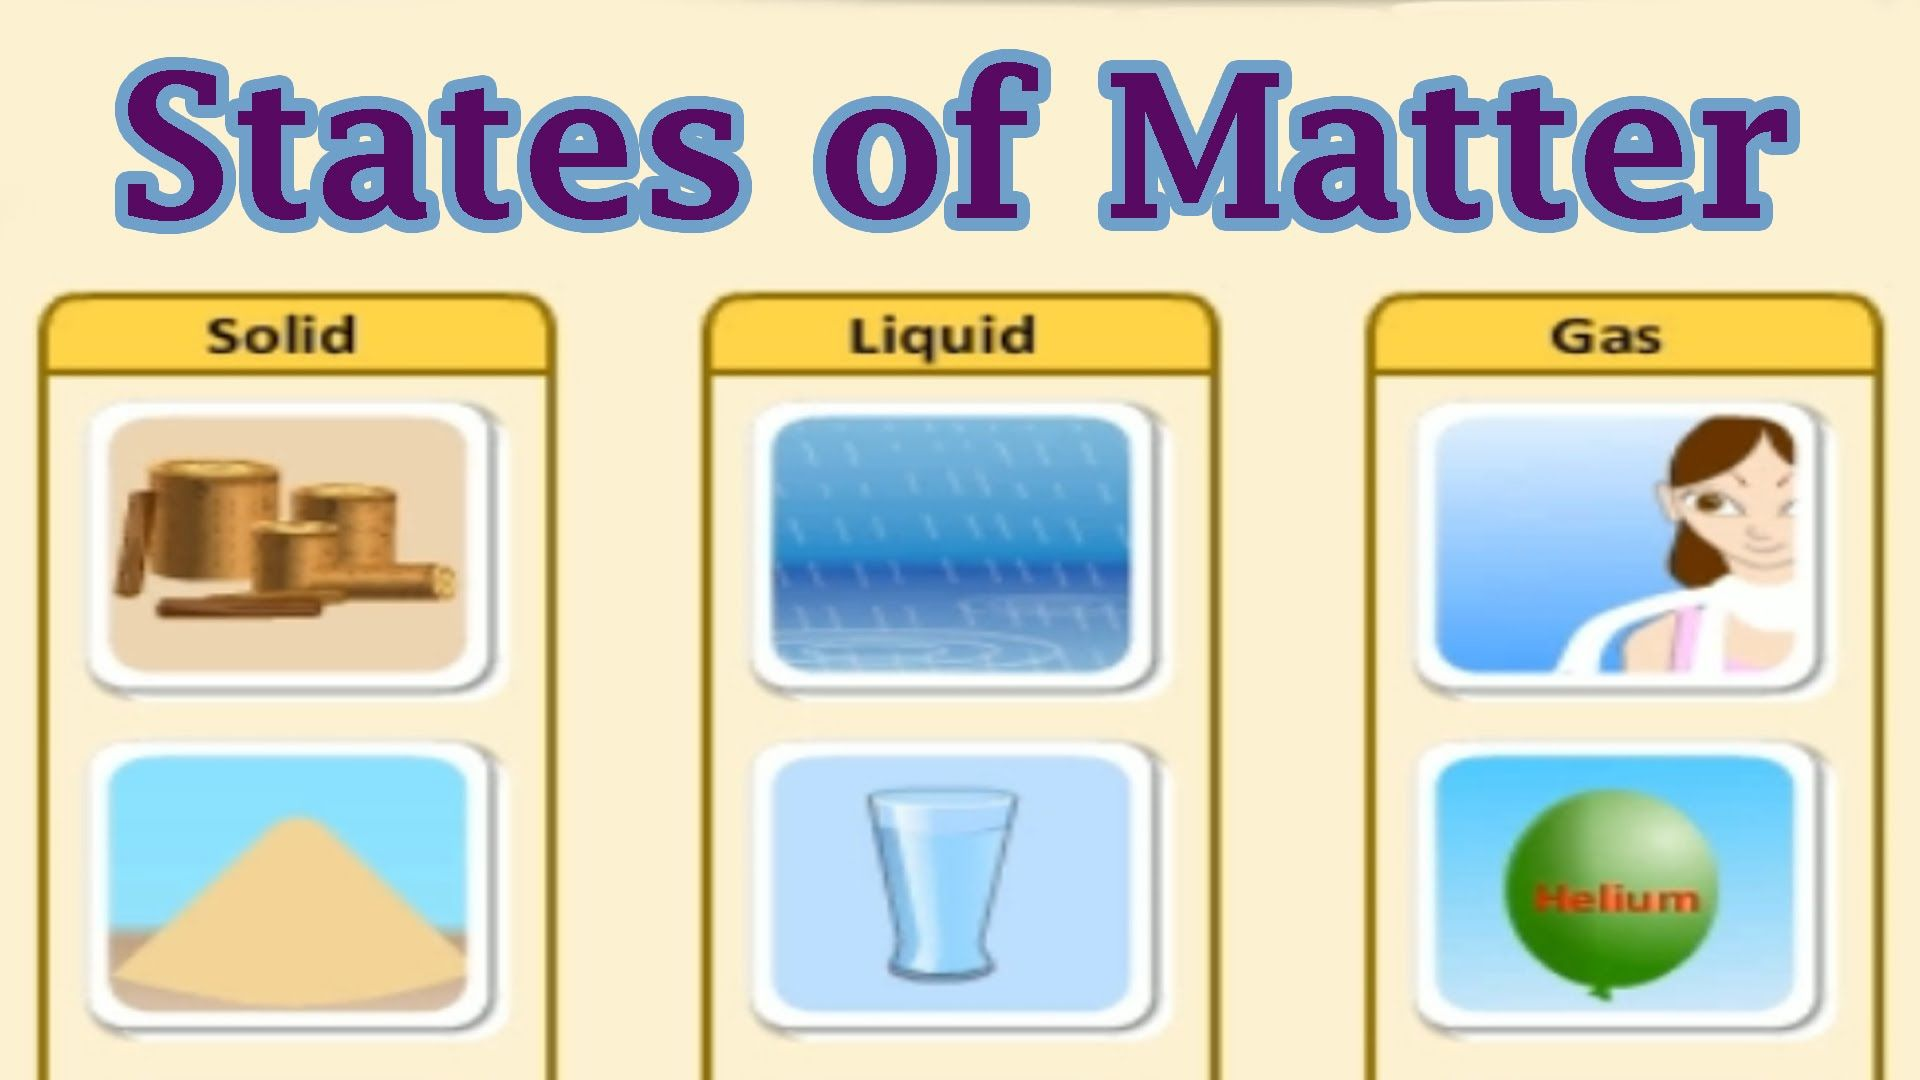 States Of Matter Interactive Game For Kids This Youtube Video From The Site Creators Highlights The S States Of Matter Science Videos For Kids Matter For Kids